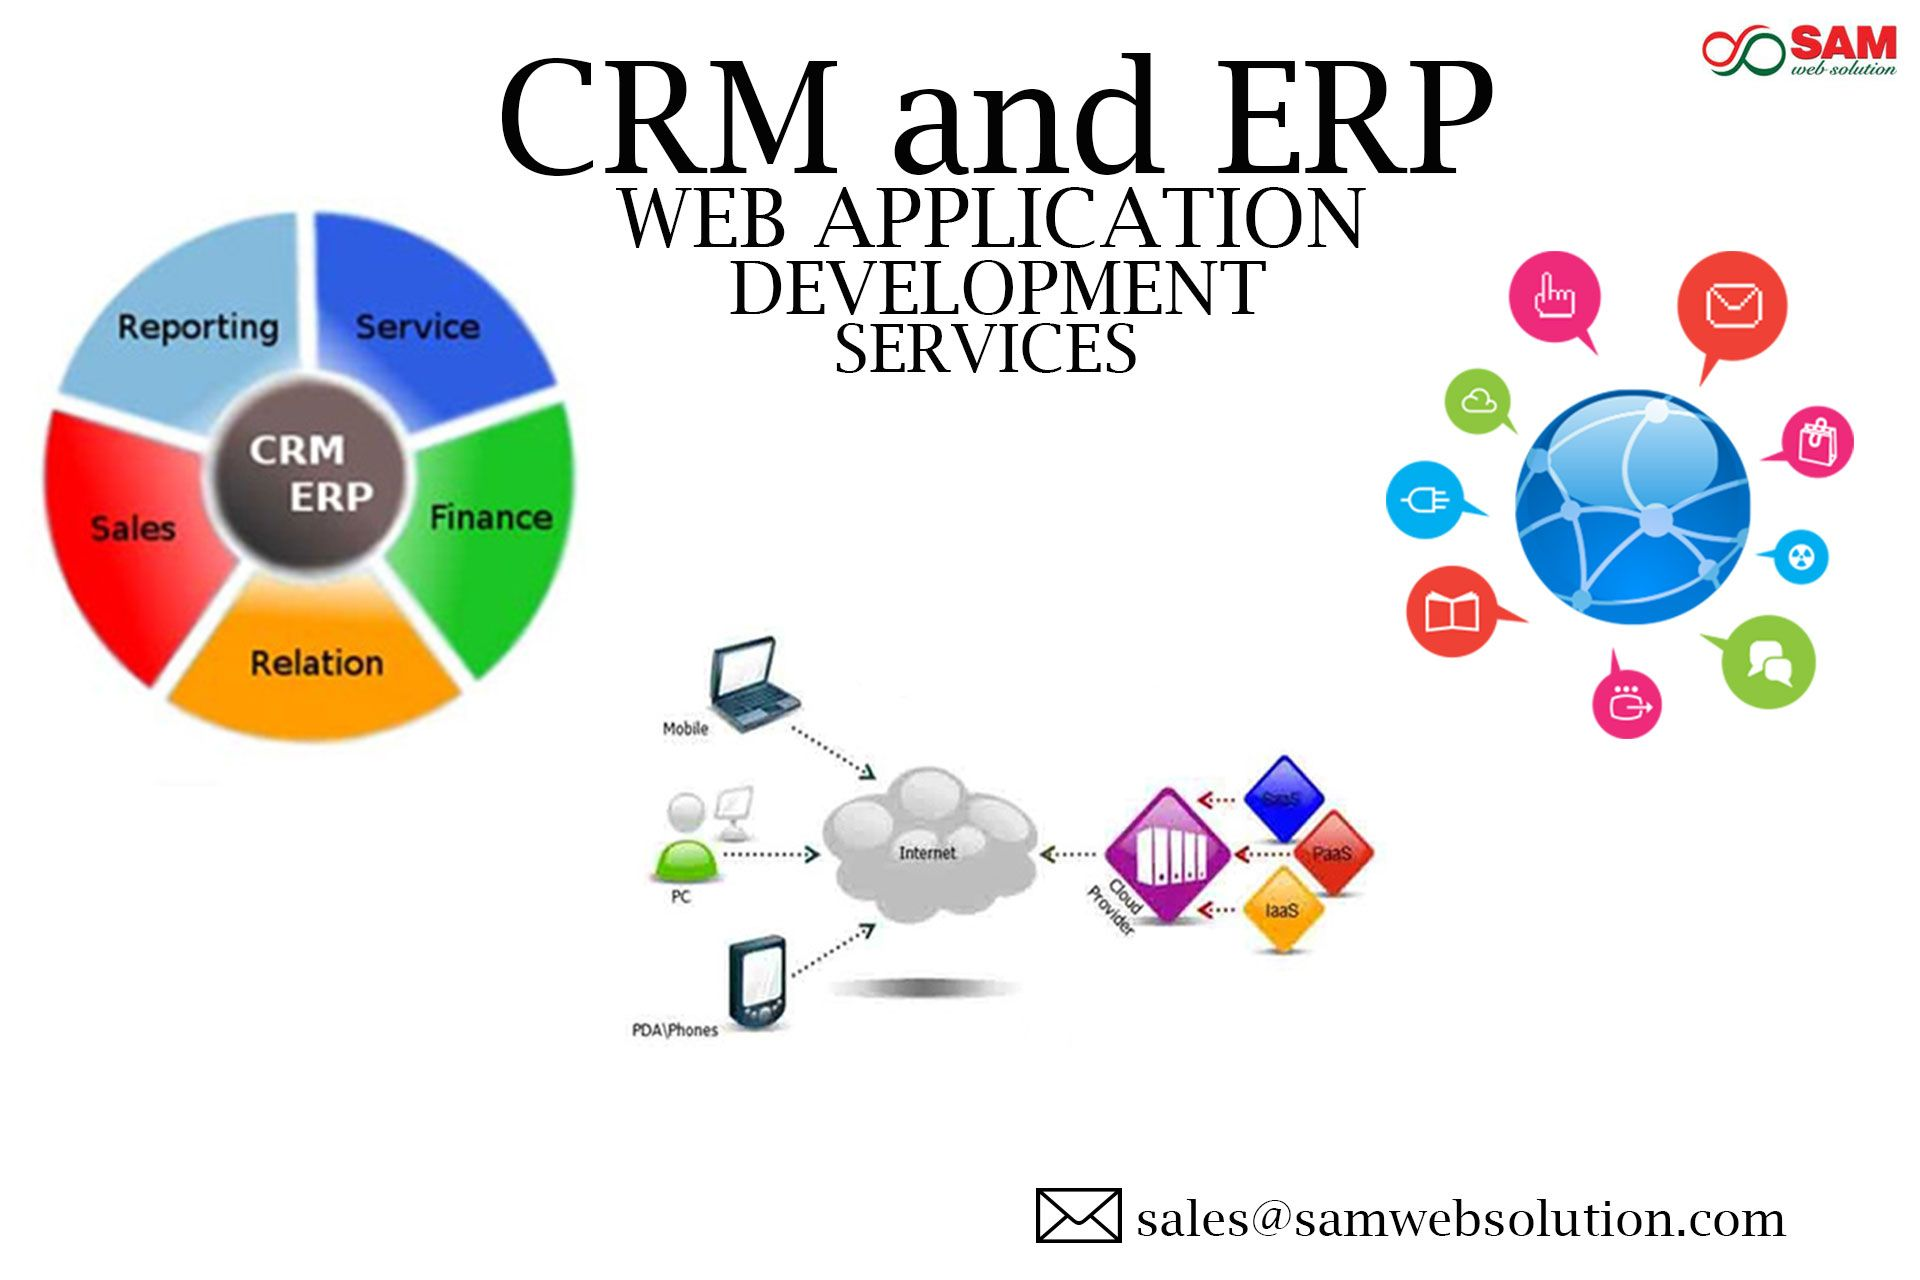 Crm And Erp Web Application Development Services Web Development Web Application Development Web Application Web Development